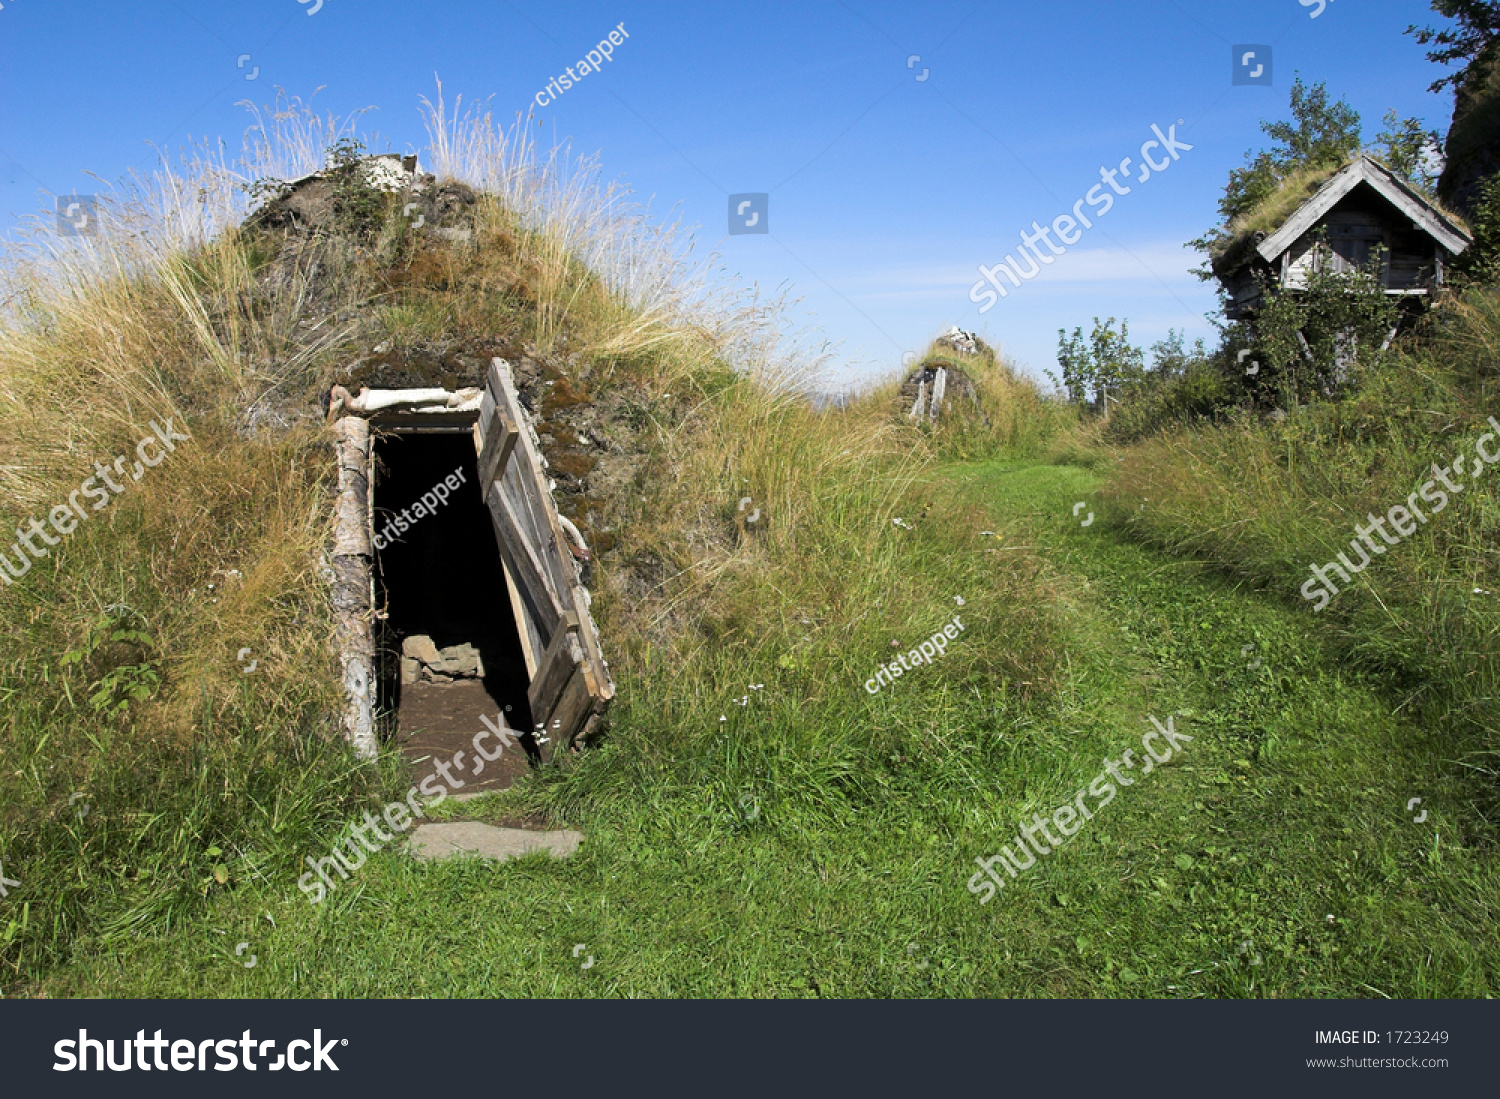 Unusual ancient sami dwellings stock photo 1723249 for Unique dwellings